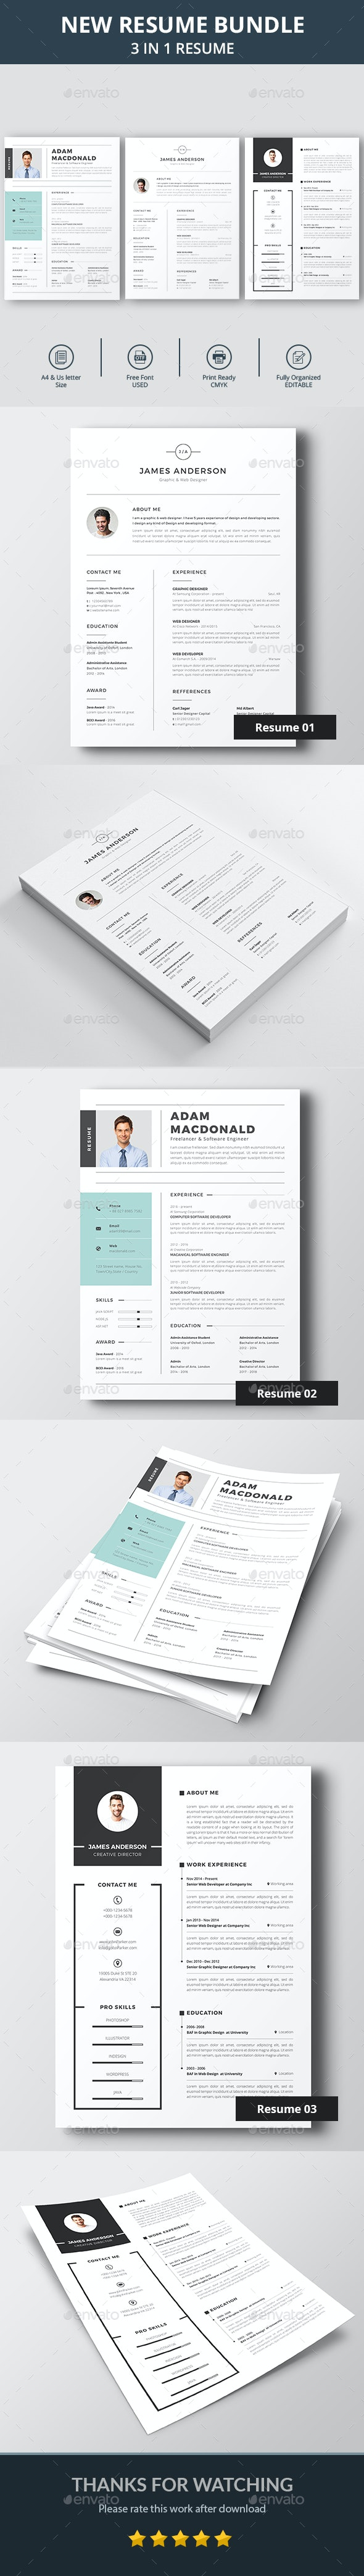 Resume & Cover Letter Bundle - Resumes Stationery